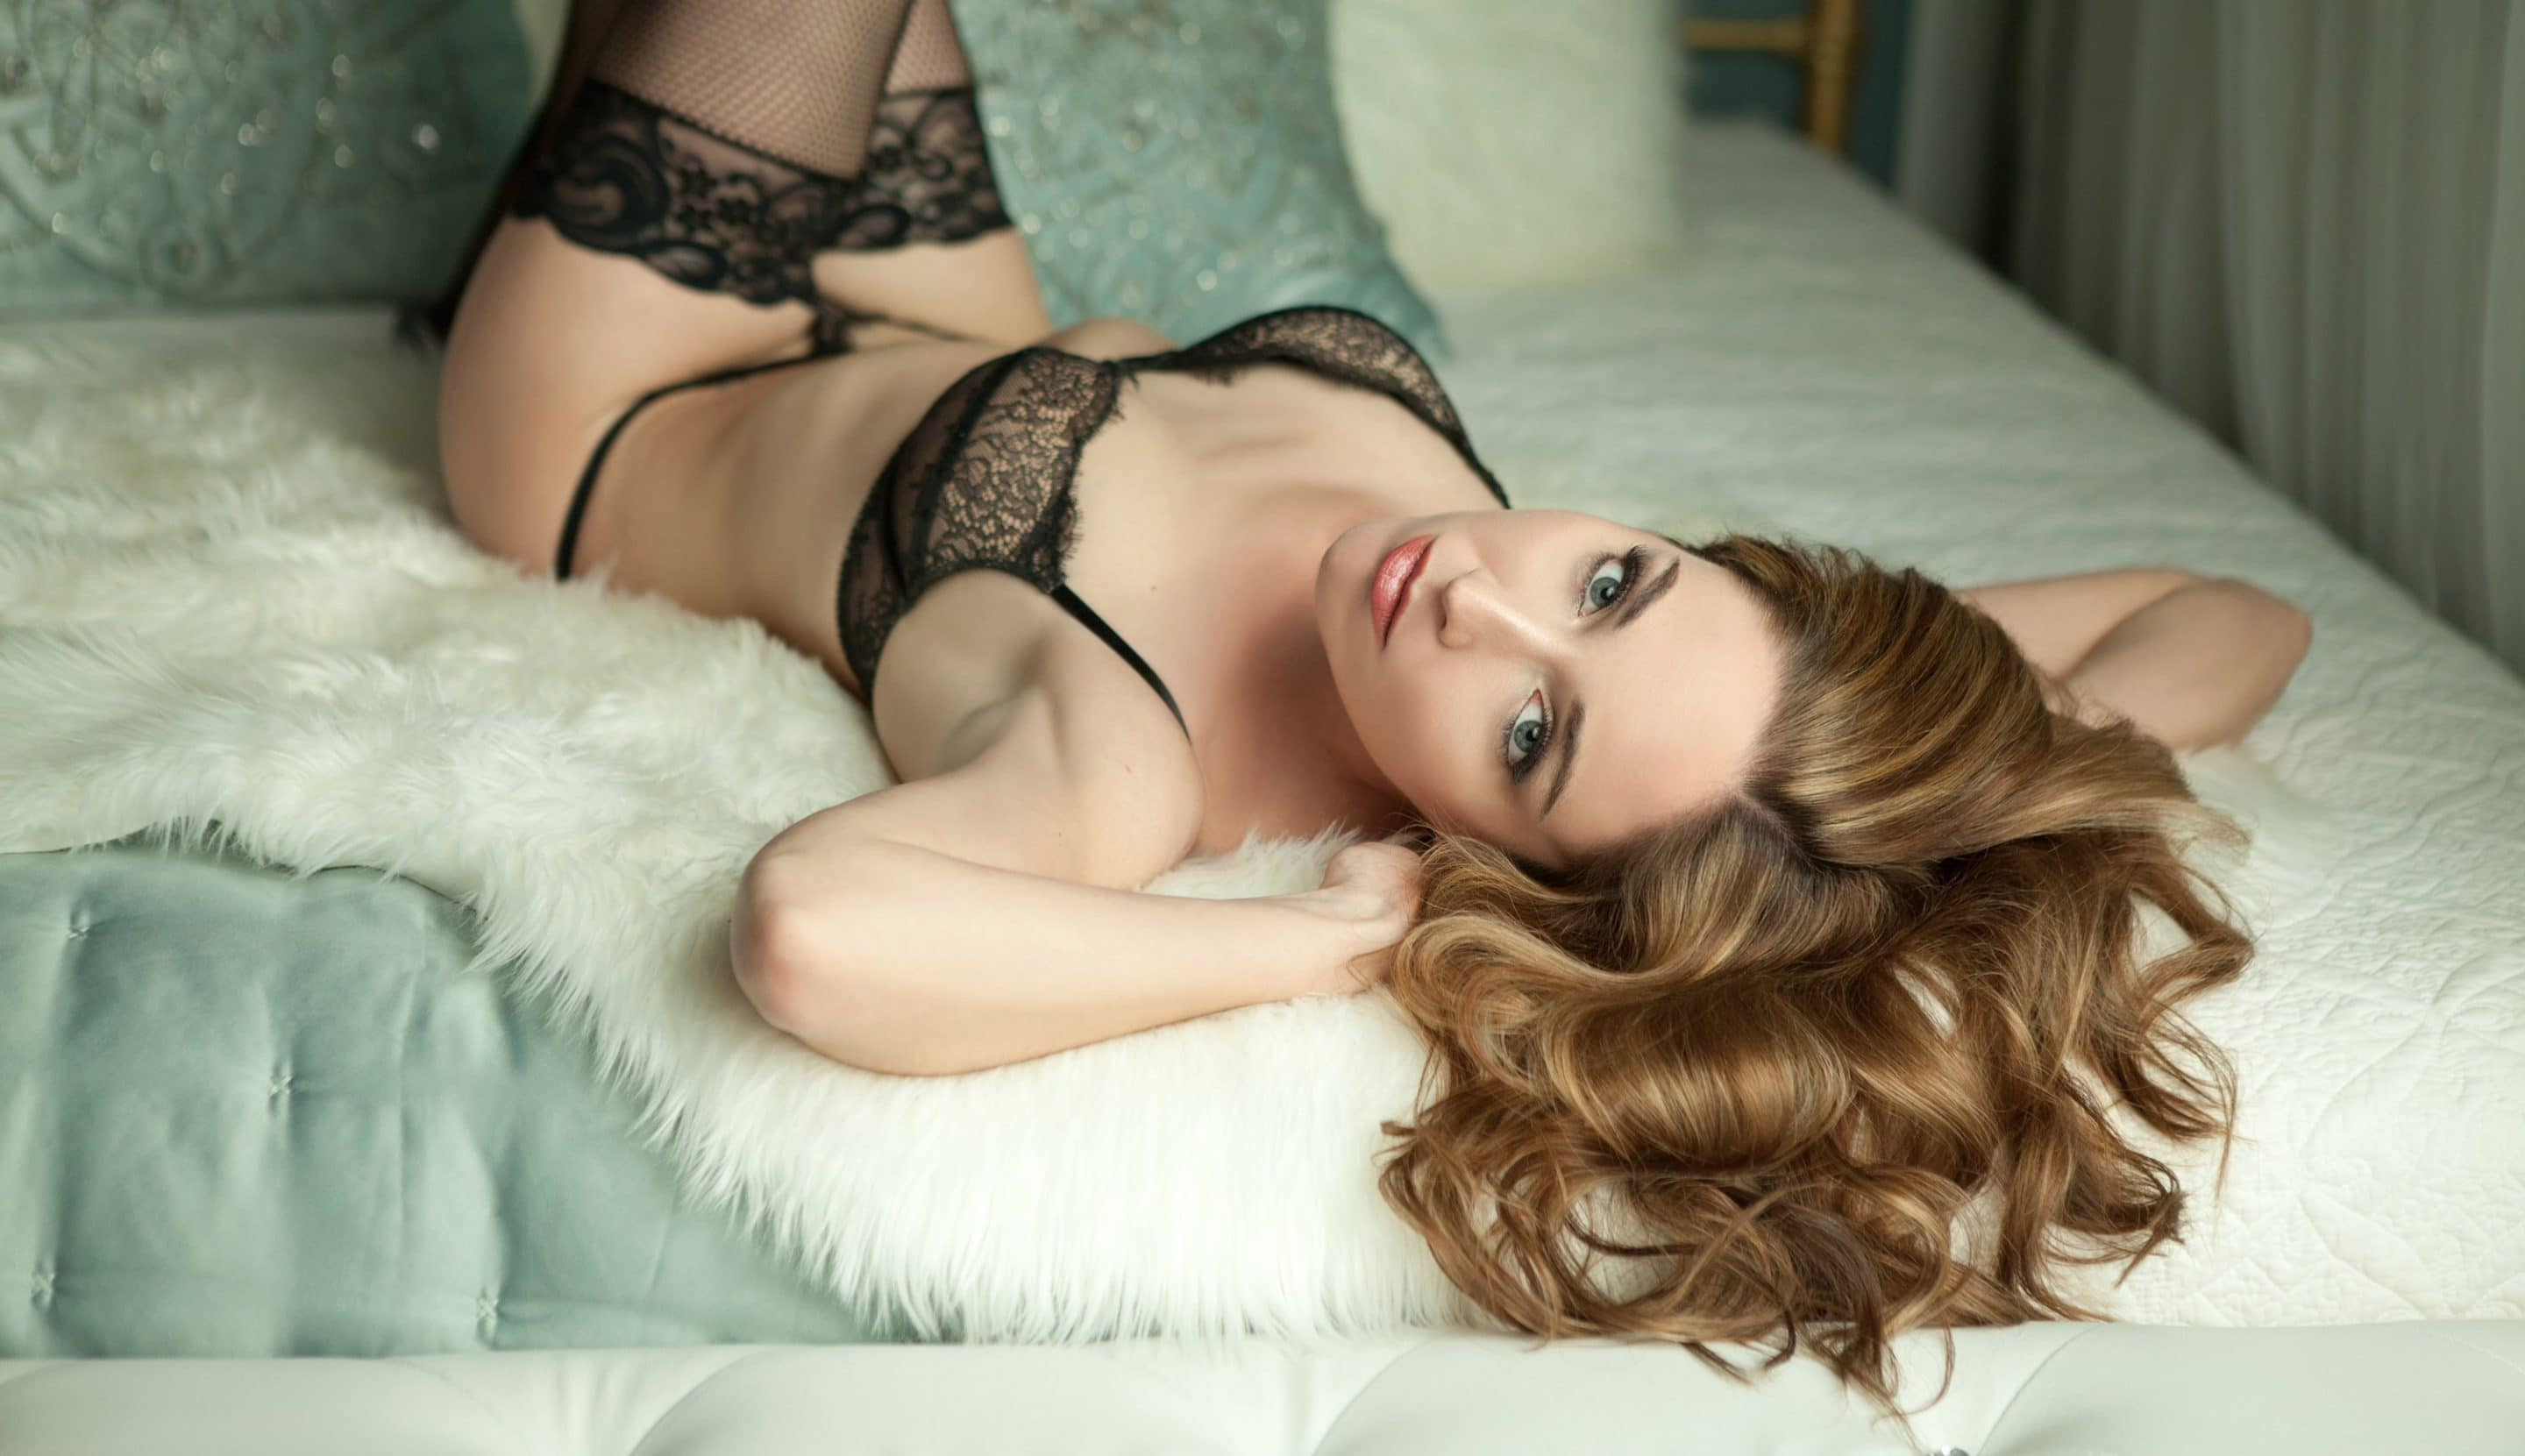 Boudoir photo on a bed